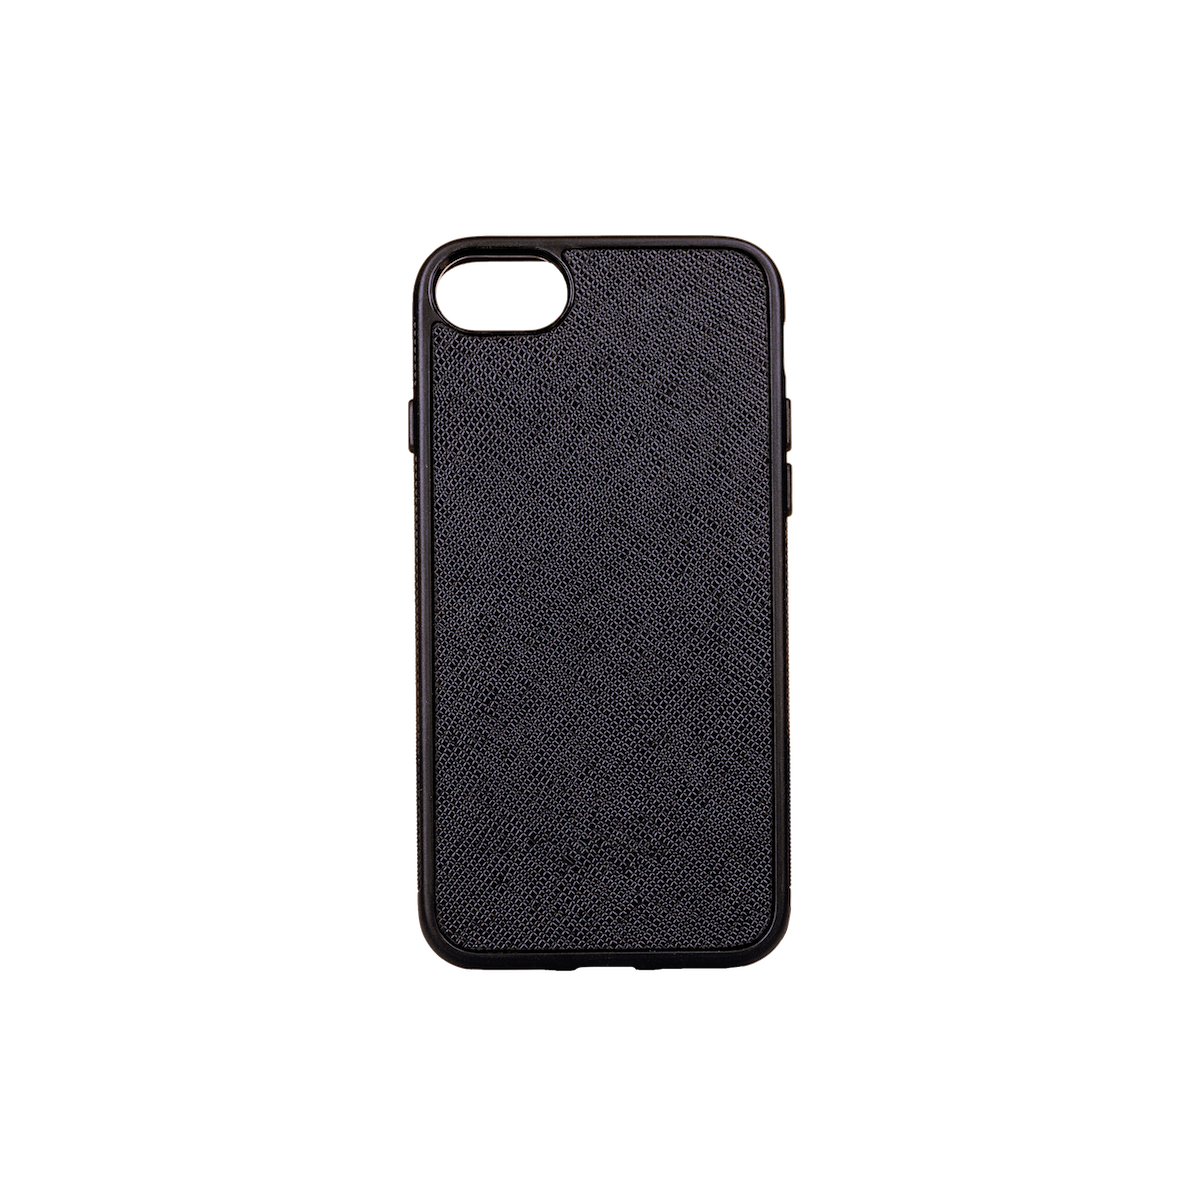 Iphone 7/8 Case, Saffiano Leather, MAISON JMK-VONMEL Luxe Gifts